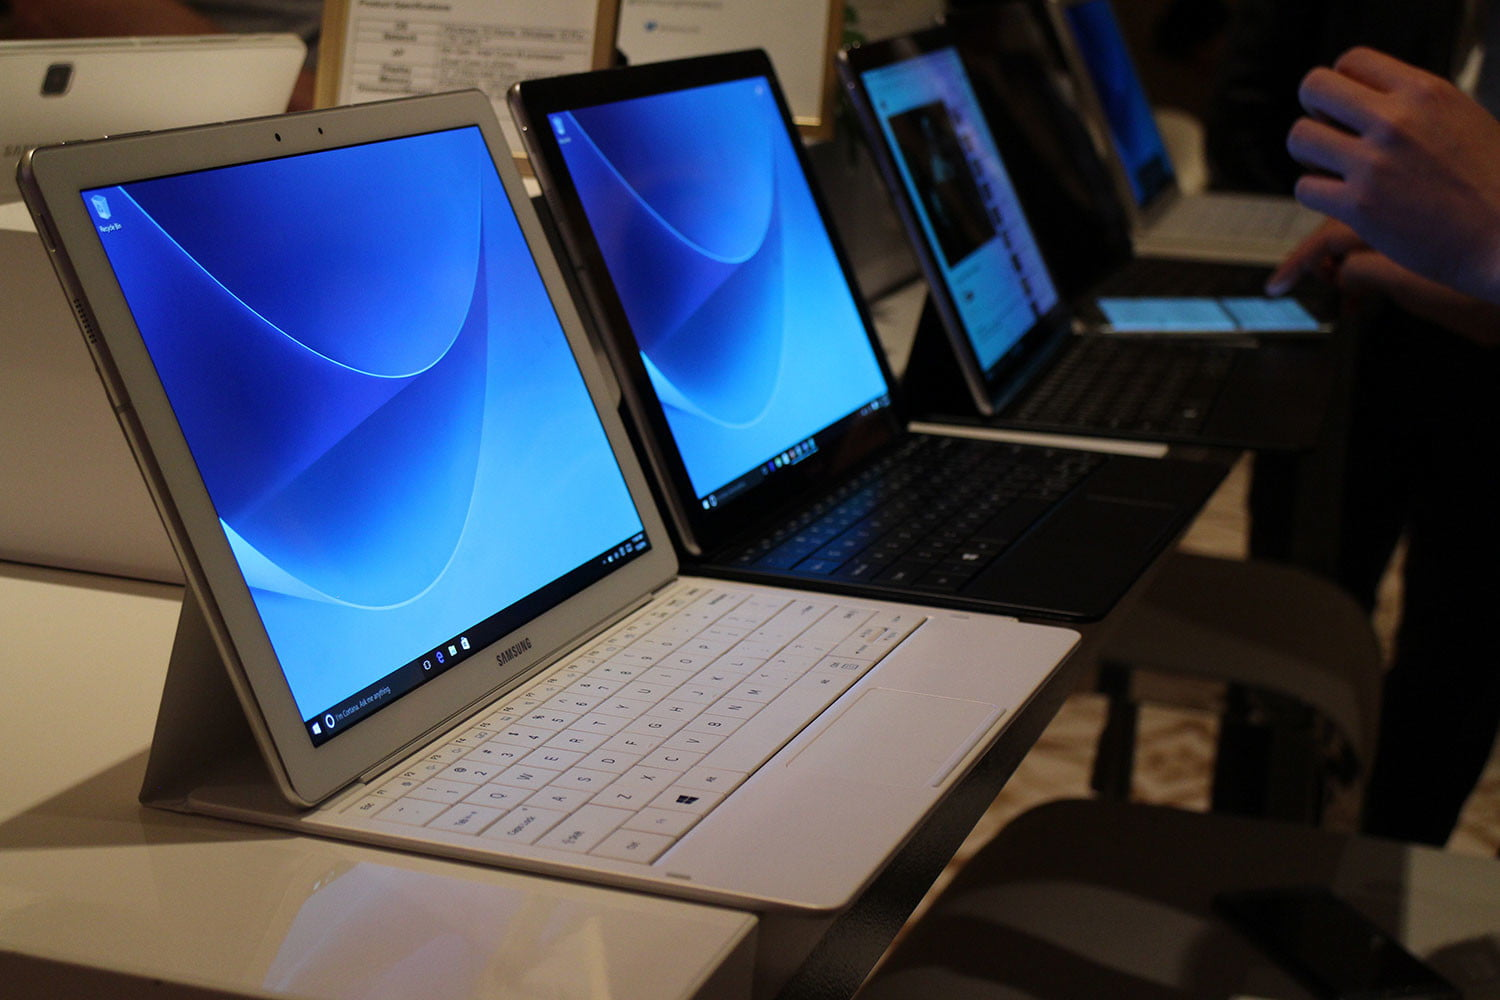 samsung tabpro s hands on ces 2016 galaxy 9787